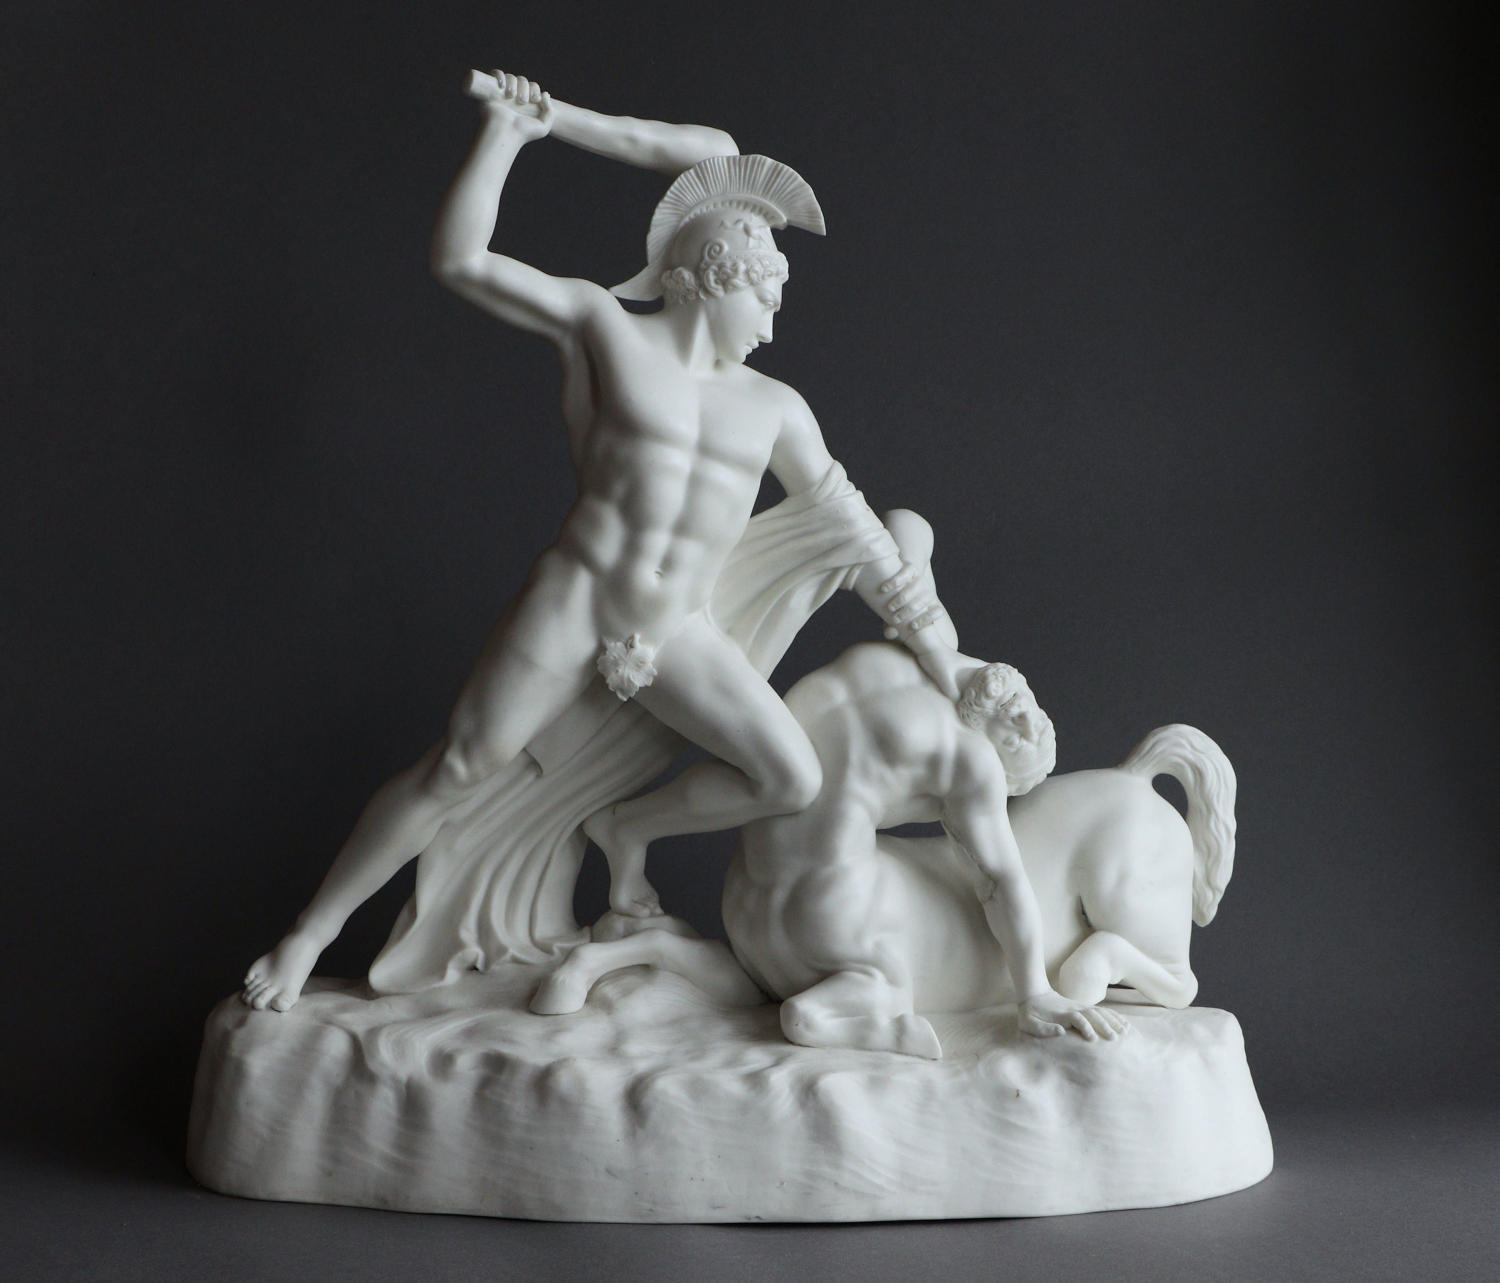 A rare Parian figure of Theseus & the Centaur by Keys and Mountford